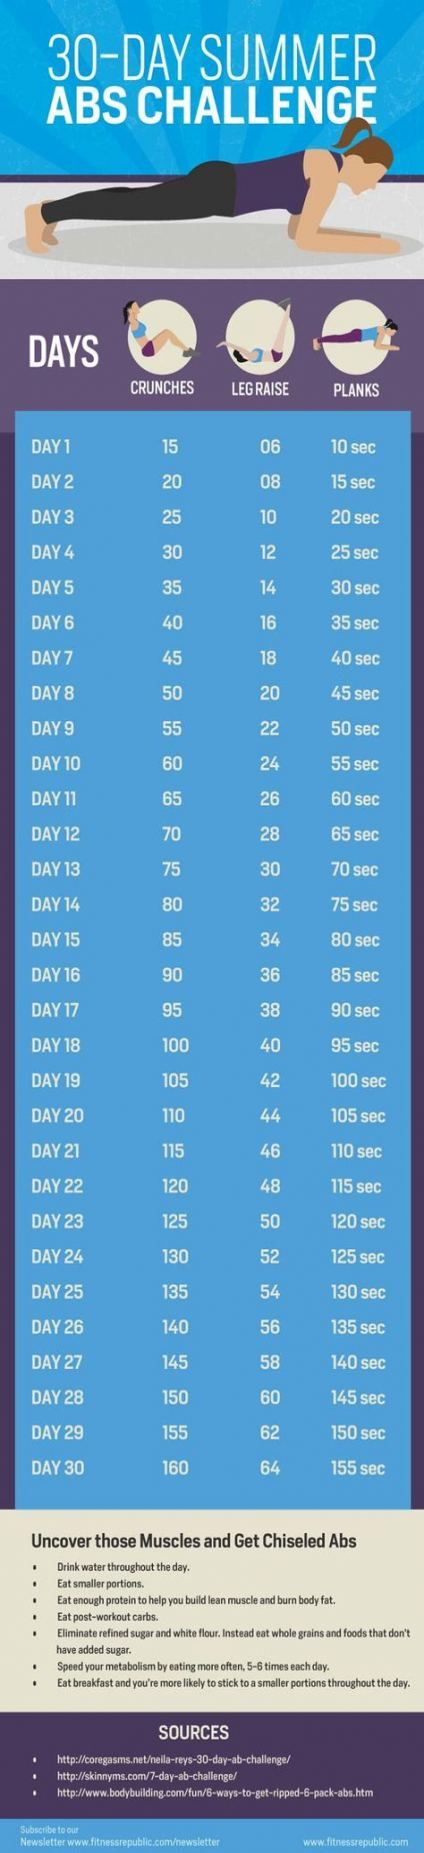 Trendy Fitness Diet Exercise Ab Workouts Ideas #fitness #diet